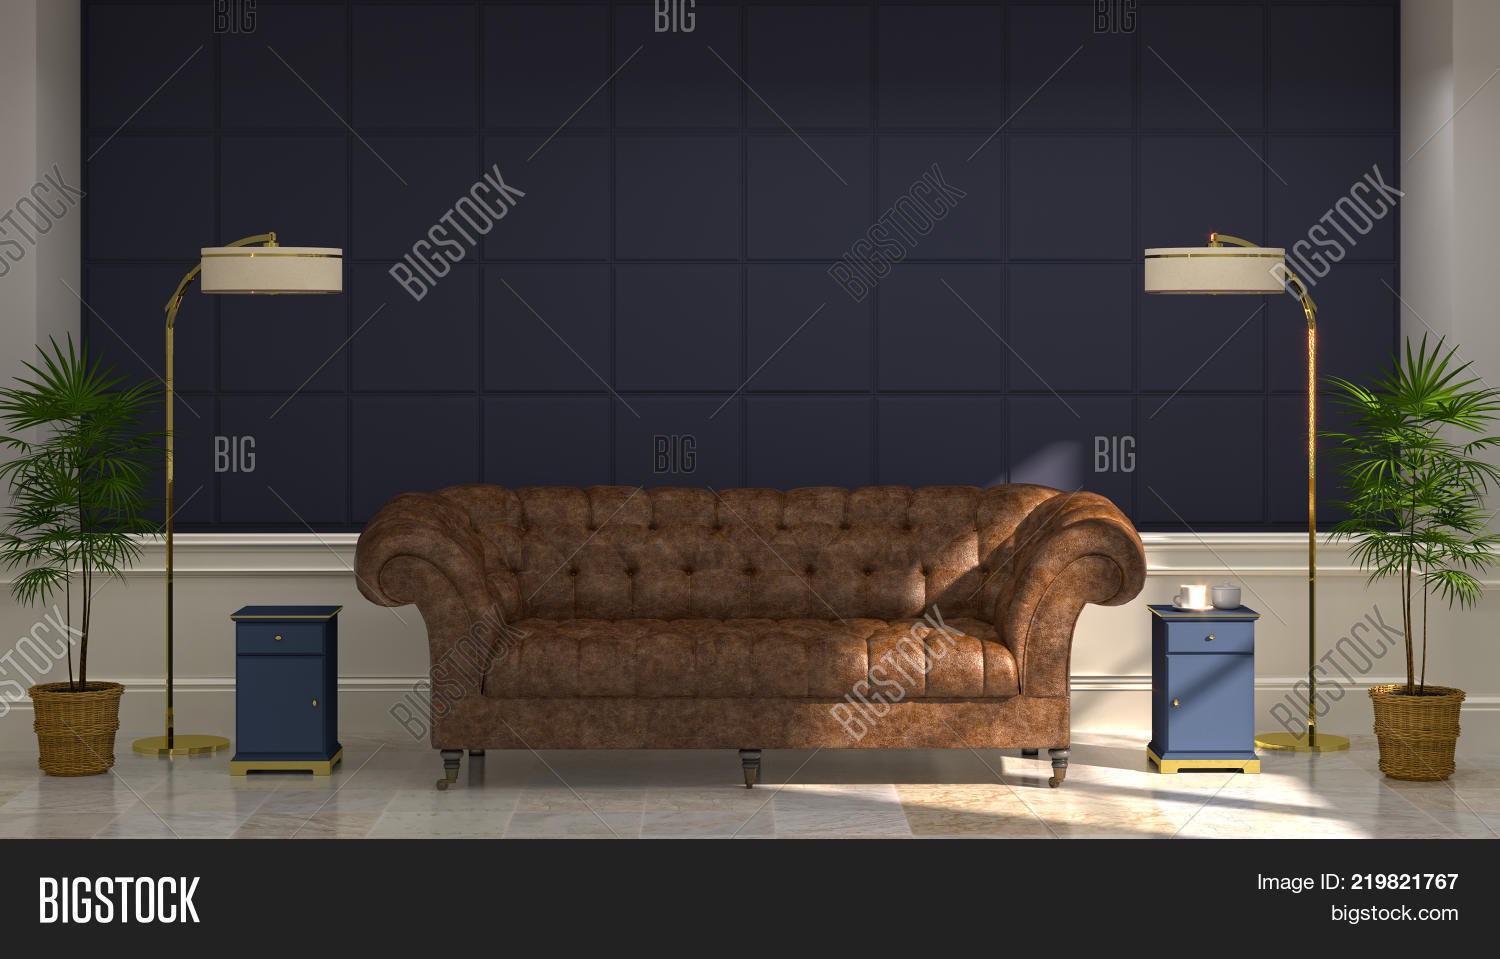 Picture of: Luxury Modern Living Image Photo Free Trial Bigstock